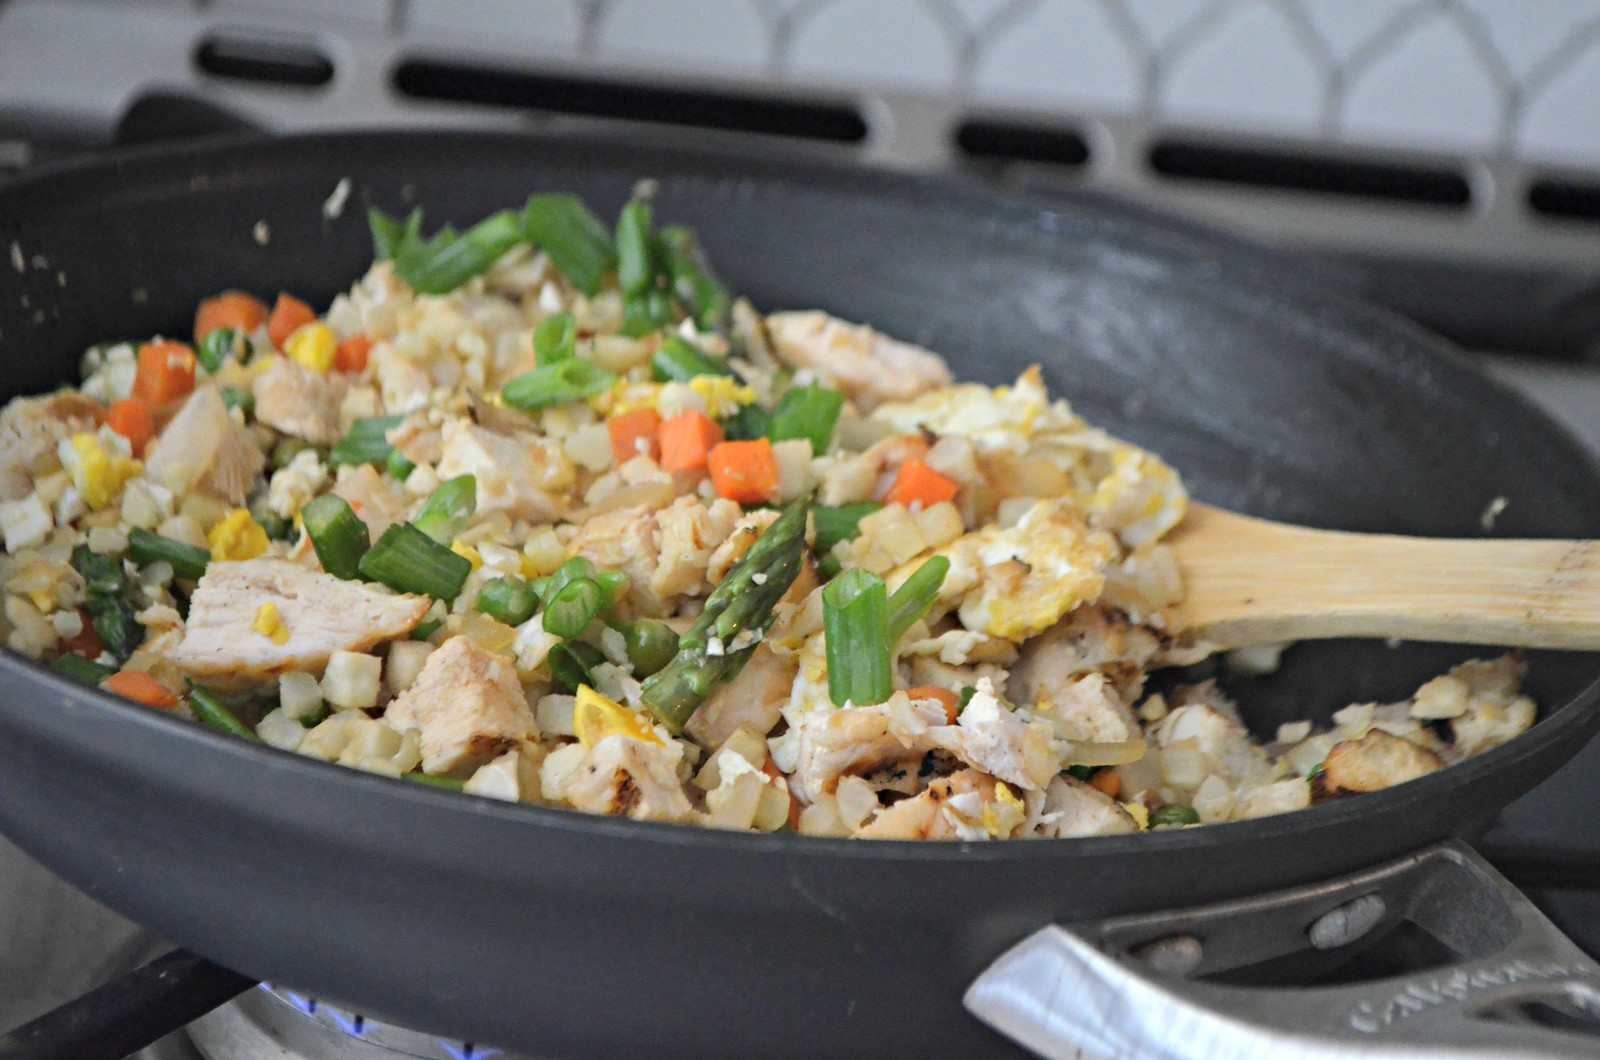 Cauliflower Fried Rice in a frying pan